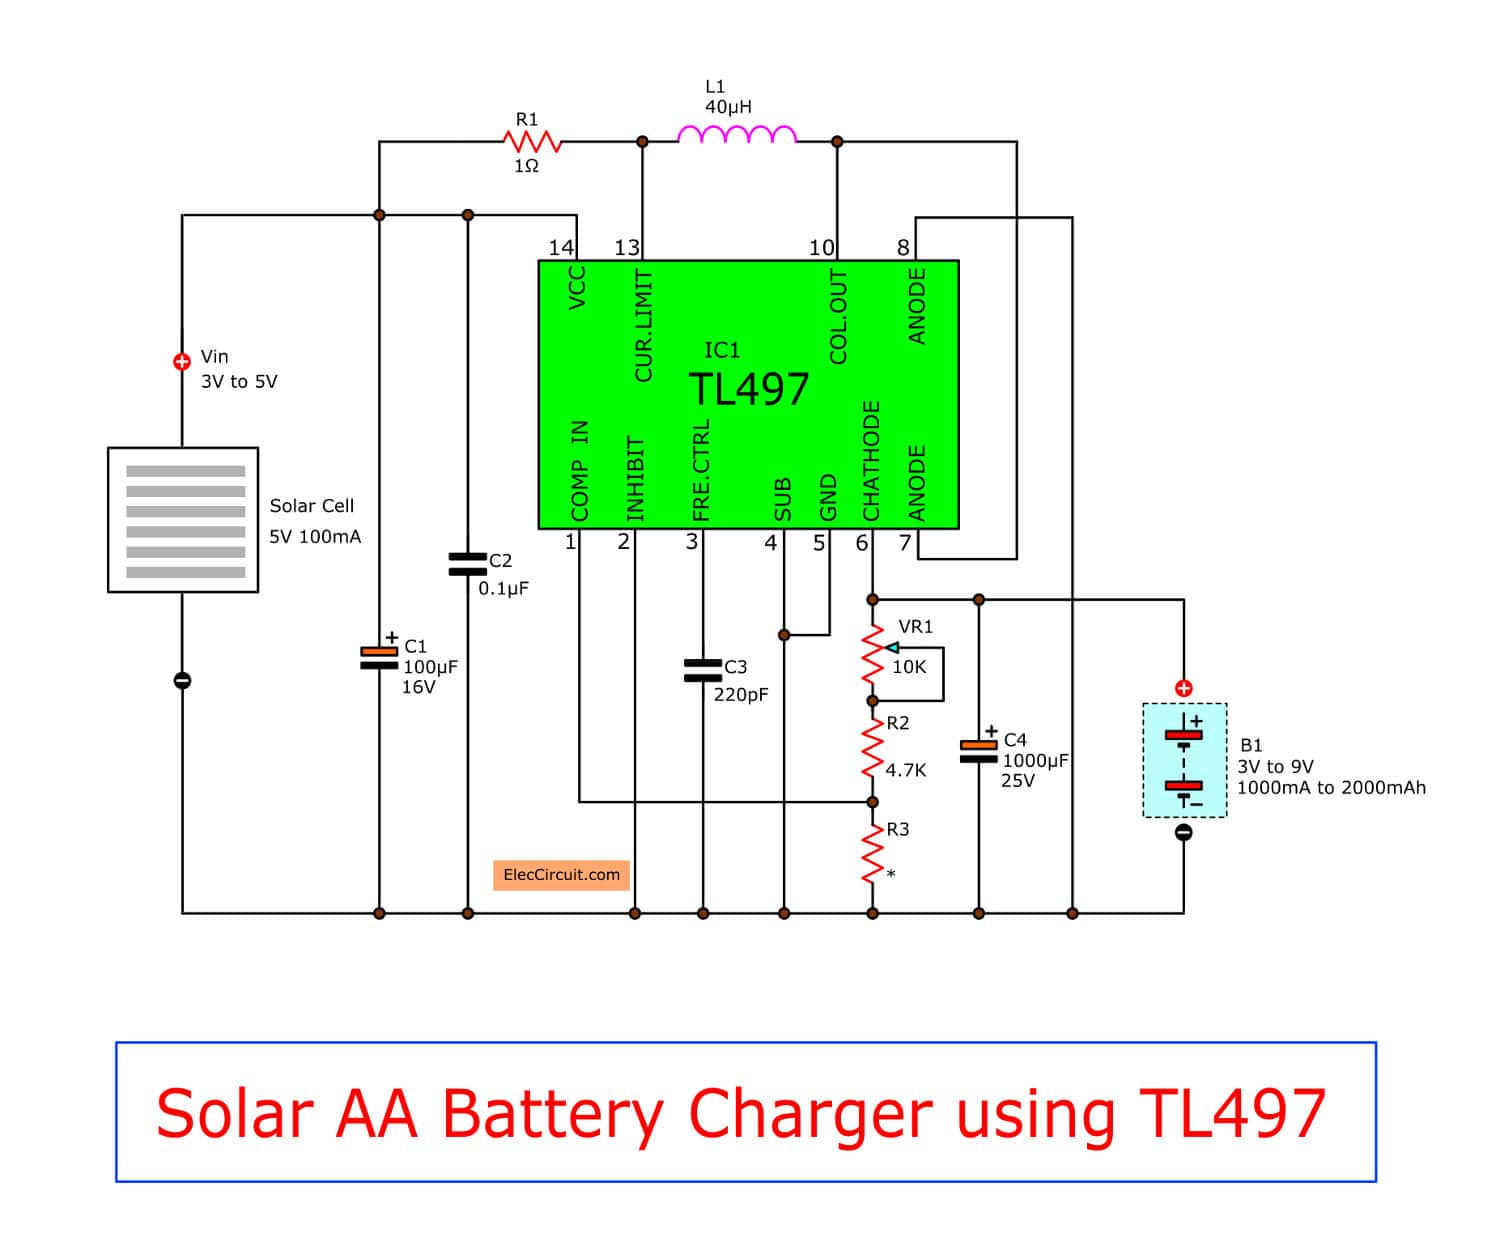 Astonishing Make Solar Aa Battery Charger Circuit By Tl497 Eleccircuit Wiring Cloud Overrenstrafr09Org